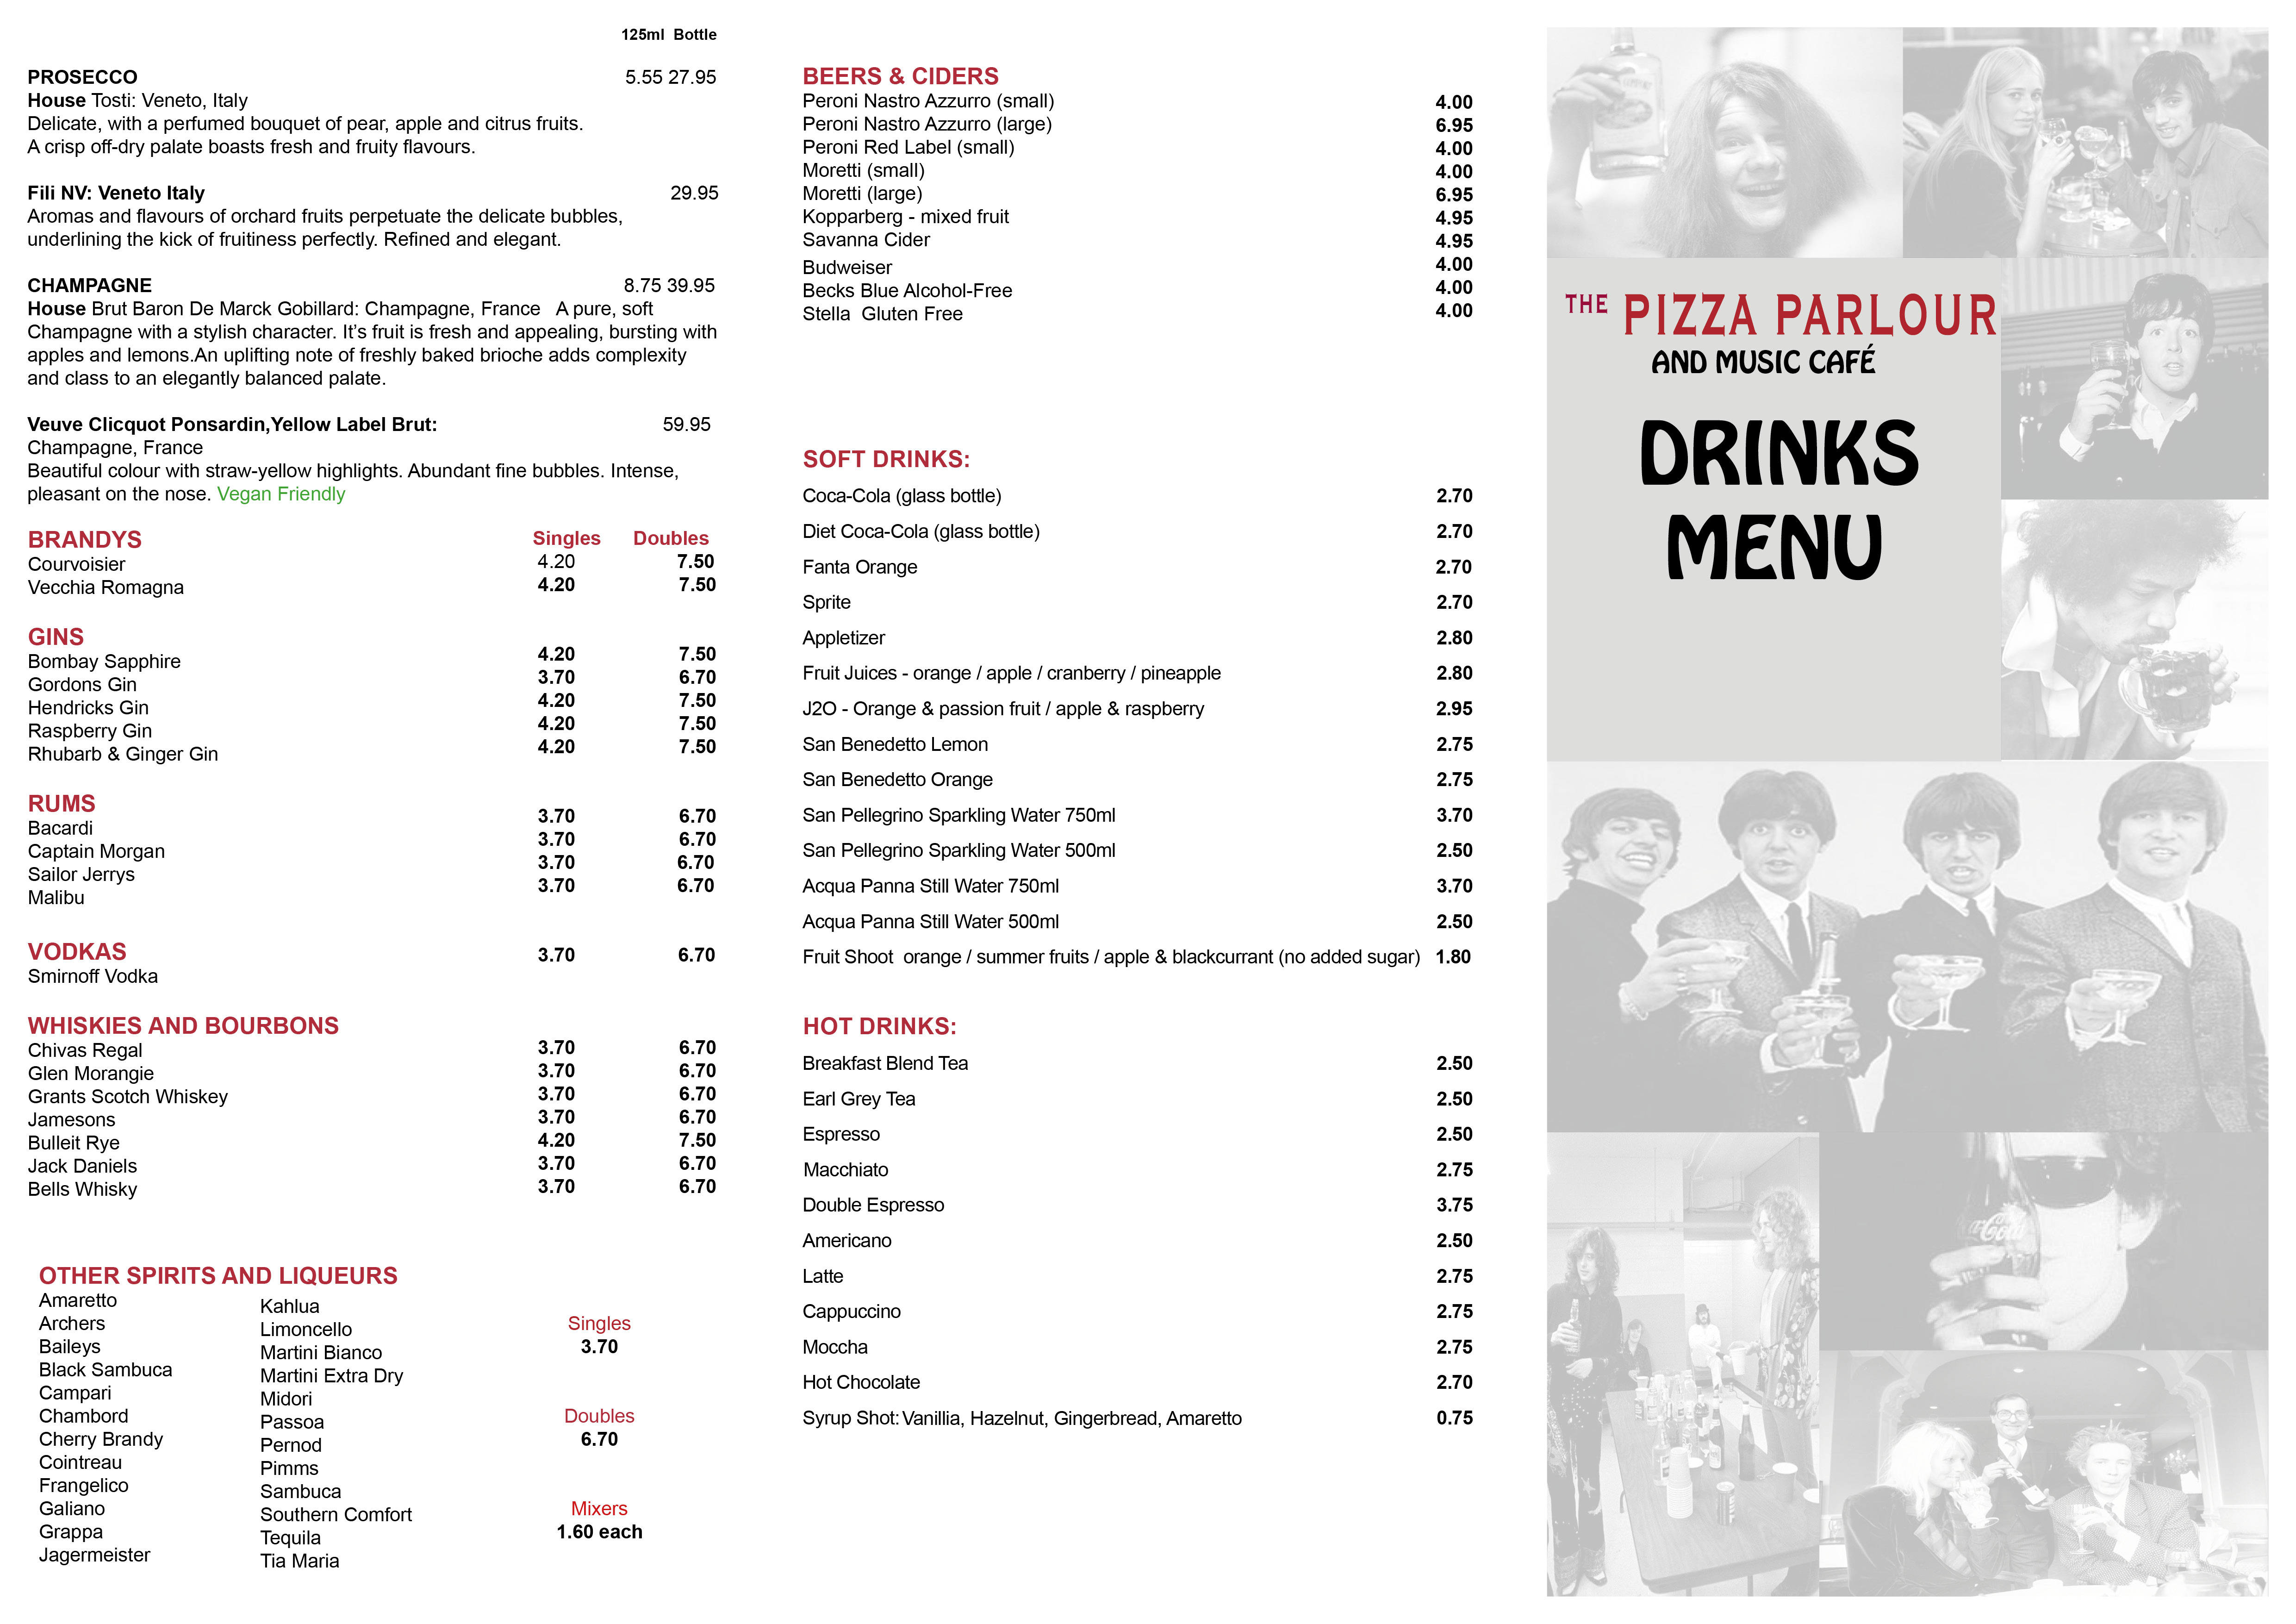 Drinks Menu - Pizza Parlour - August 2020